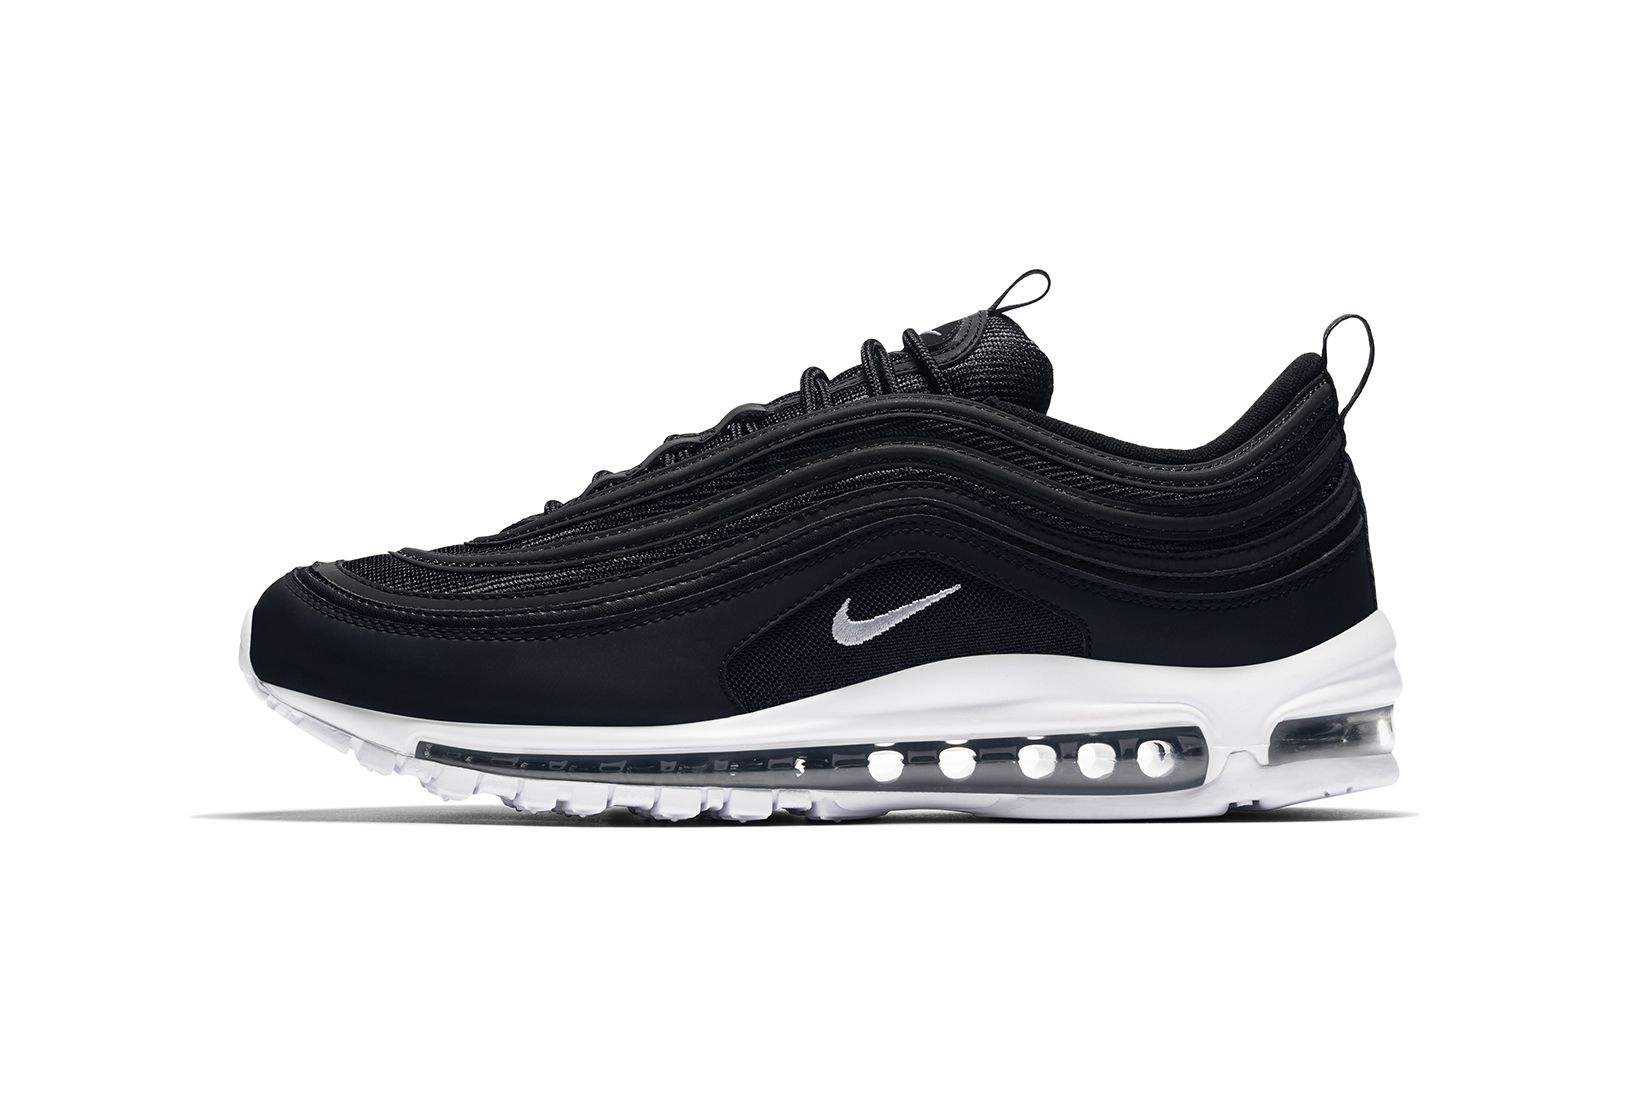 Nike Reveals Two Clean Takes on the Air Max 97 OG Sneakers  Sneakers